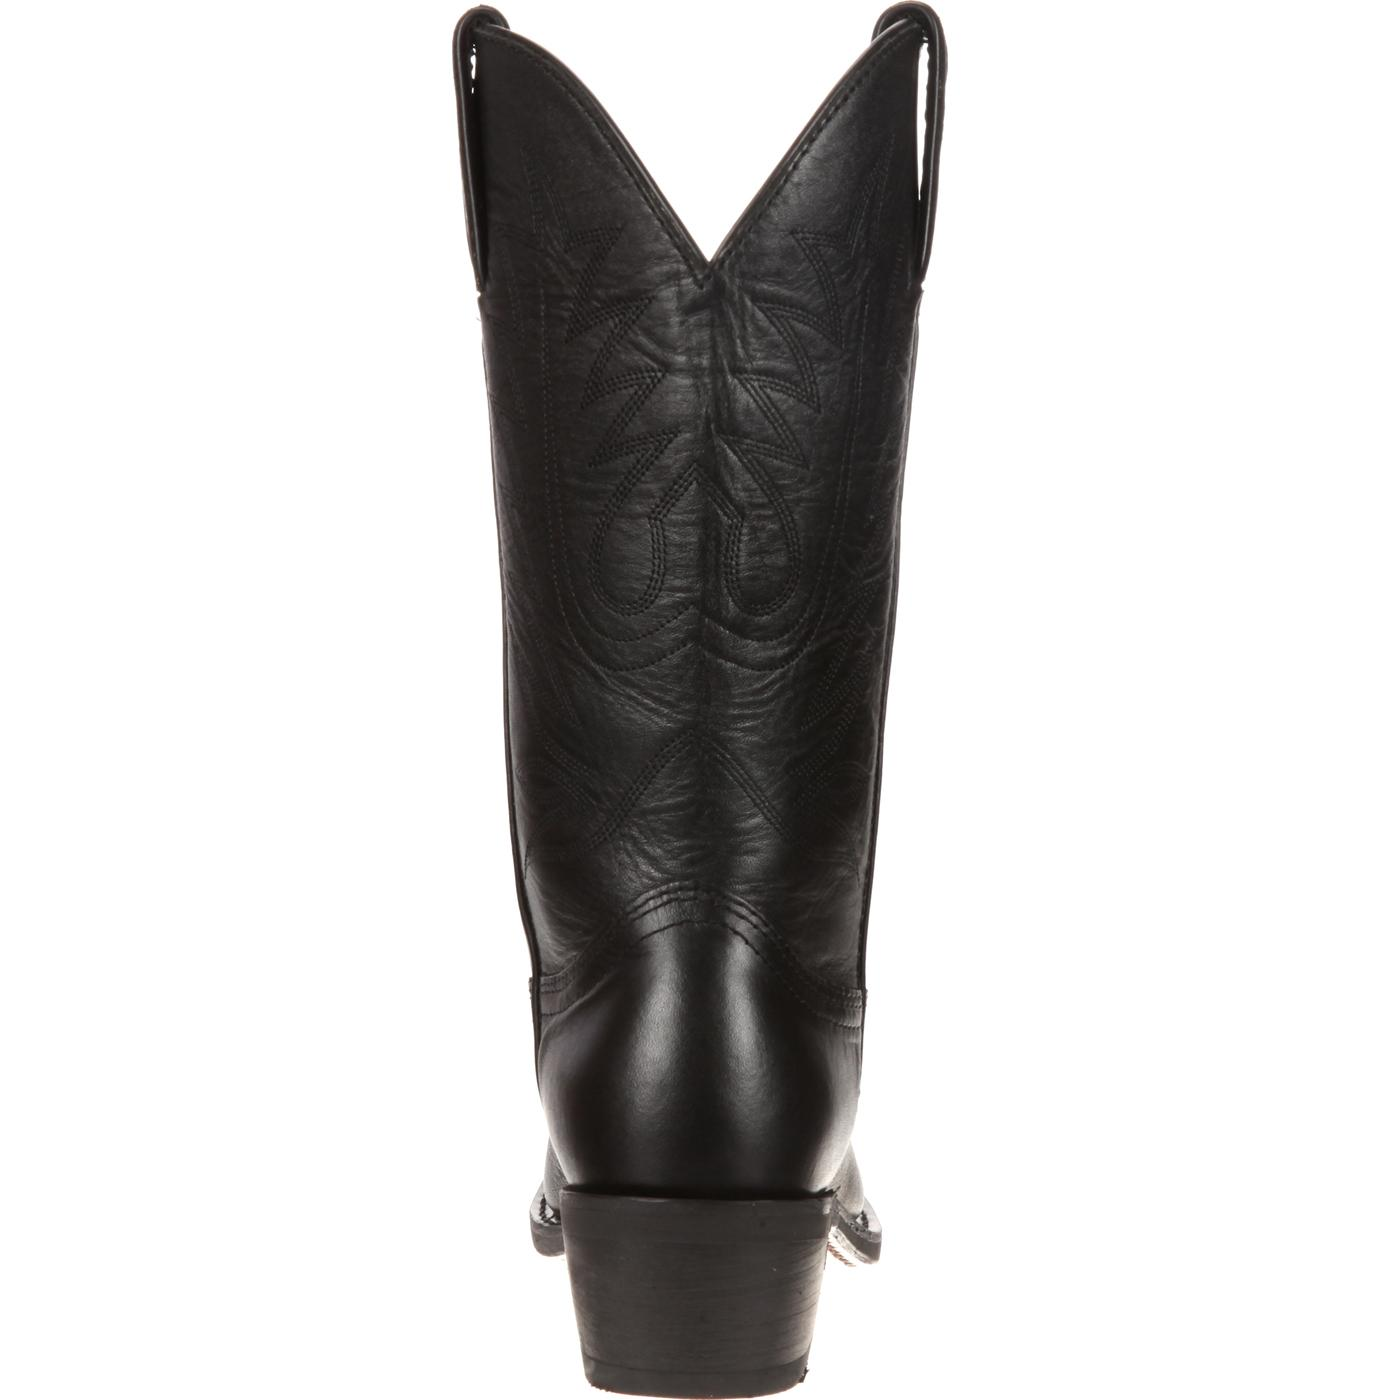 Durango: Women's Black Leather Western Boots, style #RD4100